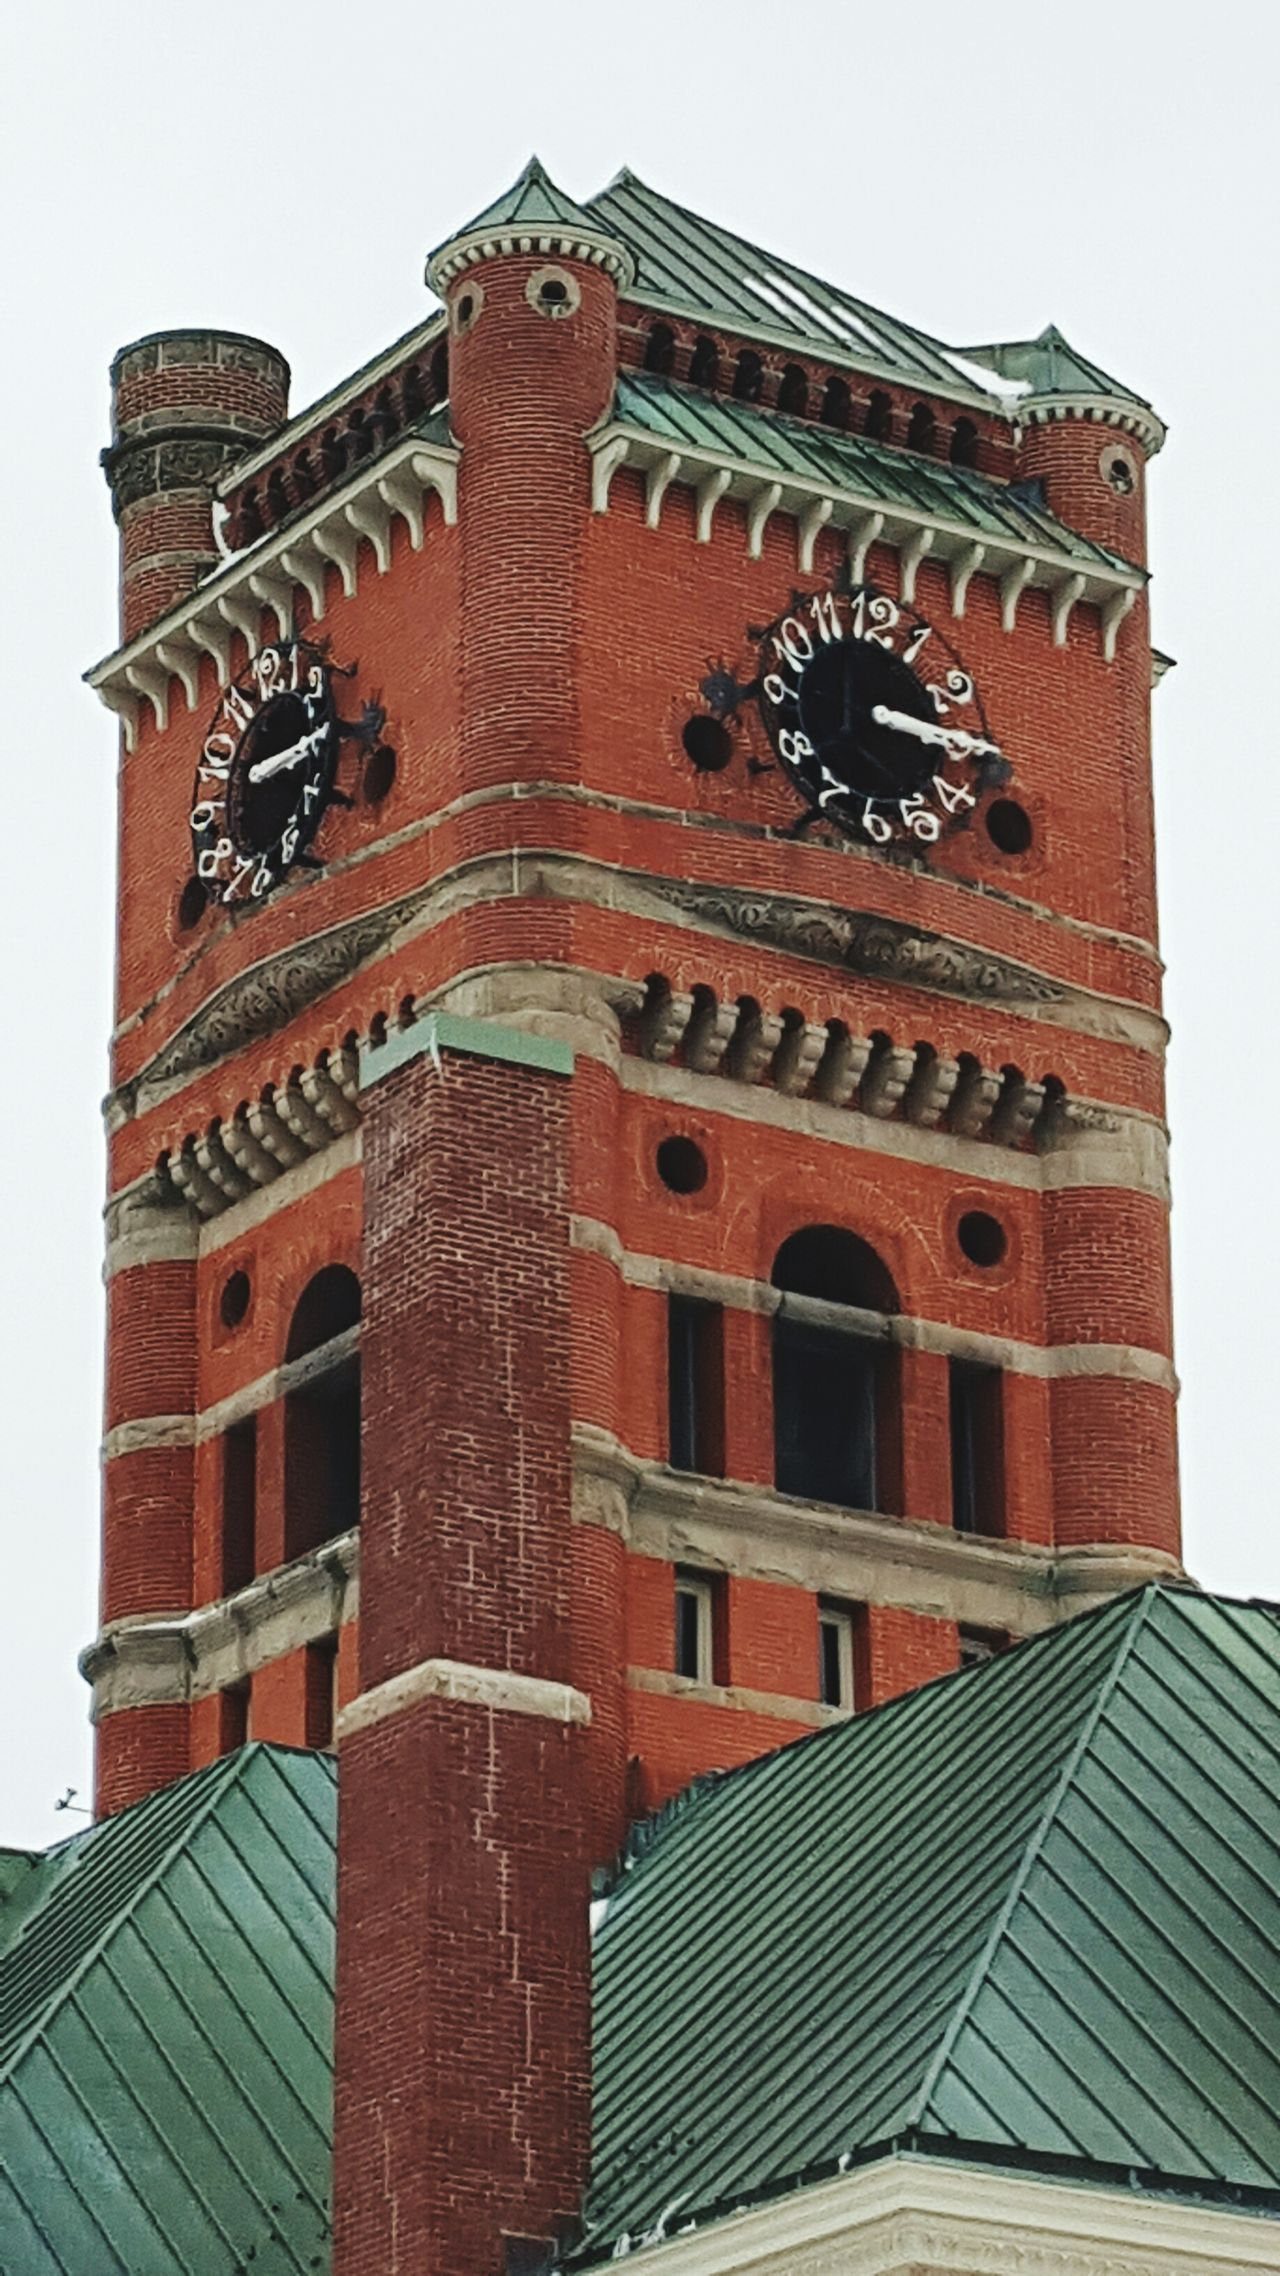 Courthouse Noble Noble County Court Clock Tower Clock Squiggly Numbers Brick Red Brick History Town Square Square Indiana Historic Architecture Metal Metal Roof Structure Metal Roof Green Travel Traveling Old Old Buildings EyeEm Best Shots Eye4photography